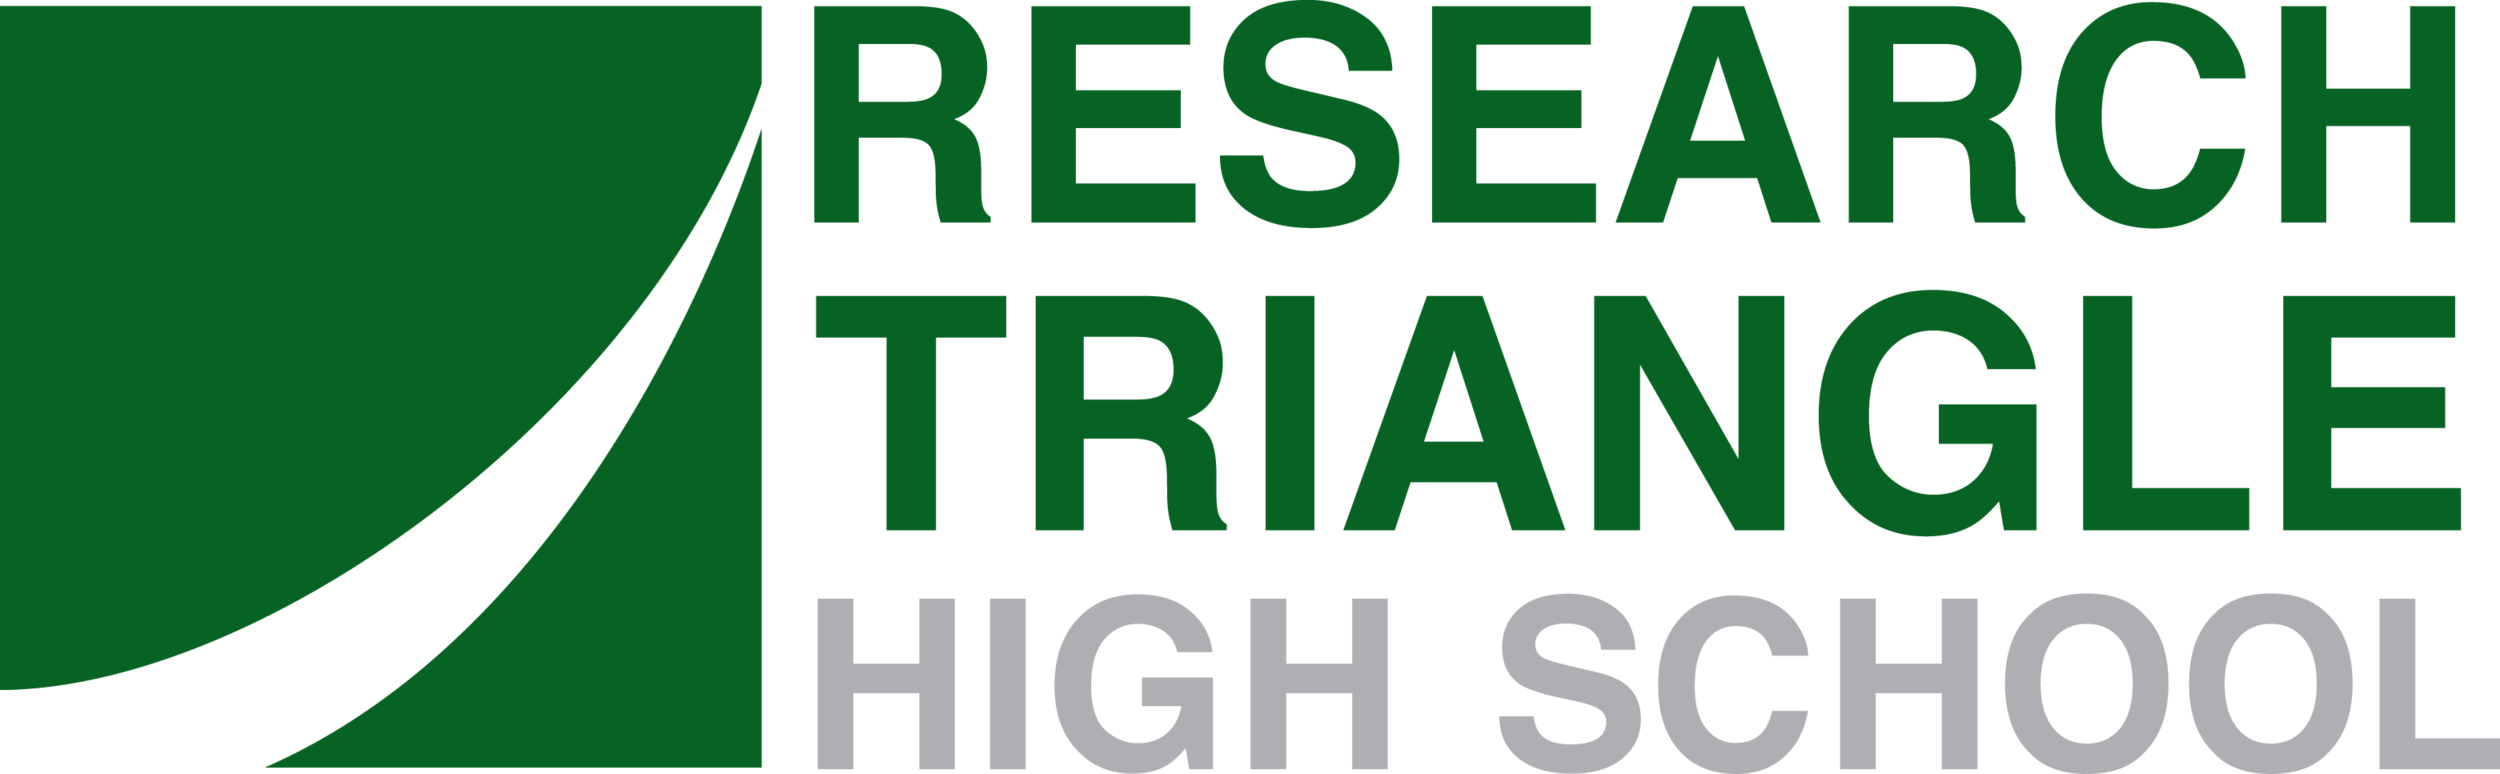 Research Triangle High School logo